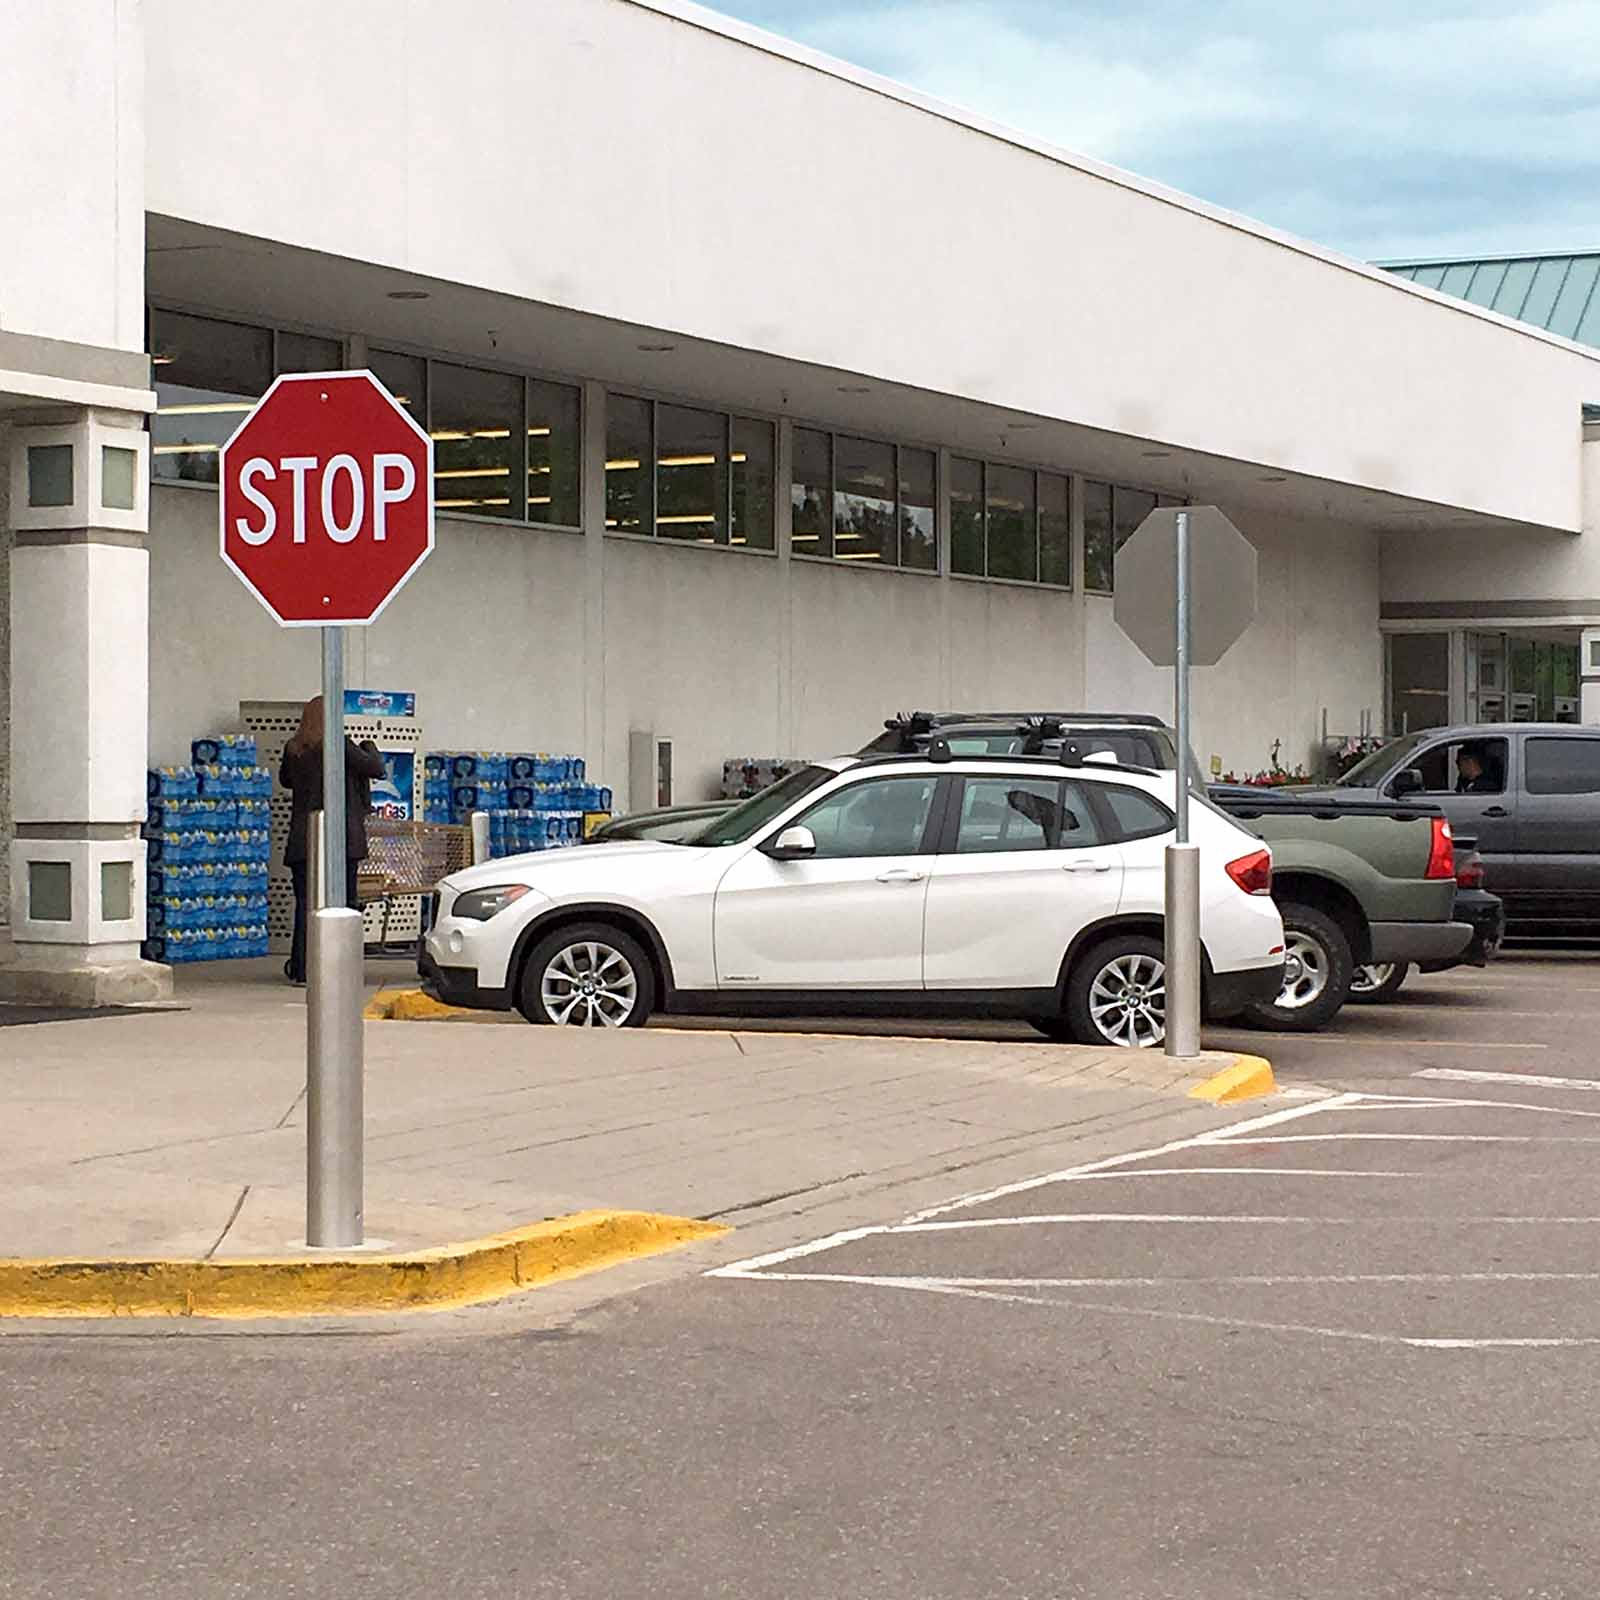 McCue Crash Tested ASTM F3016 CrashCore Bollard with Sign Post in parking lot